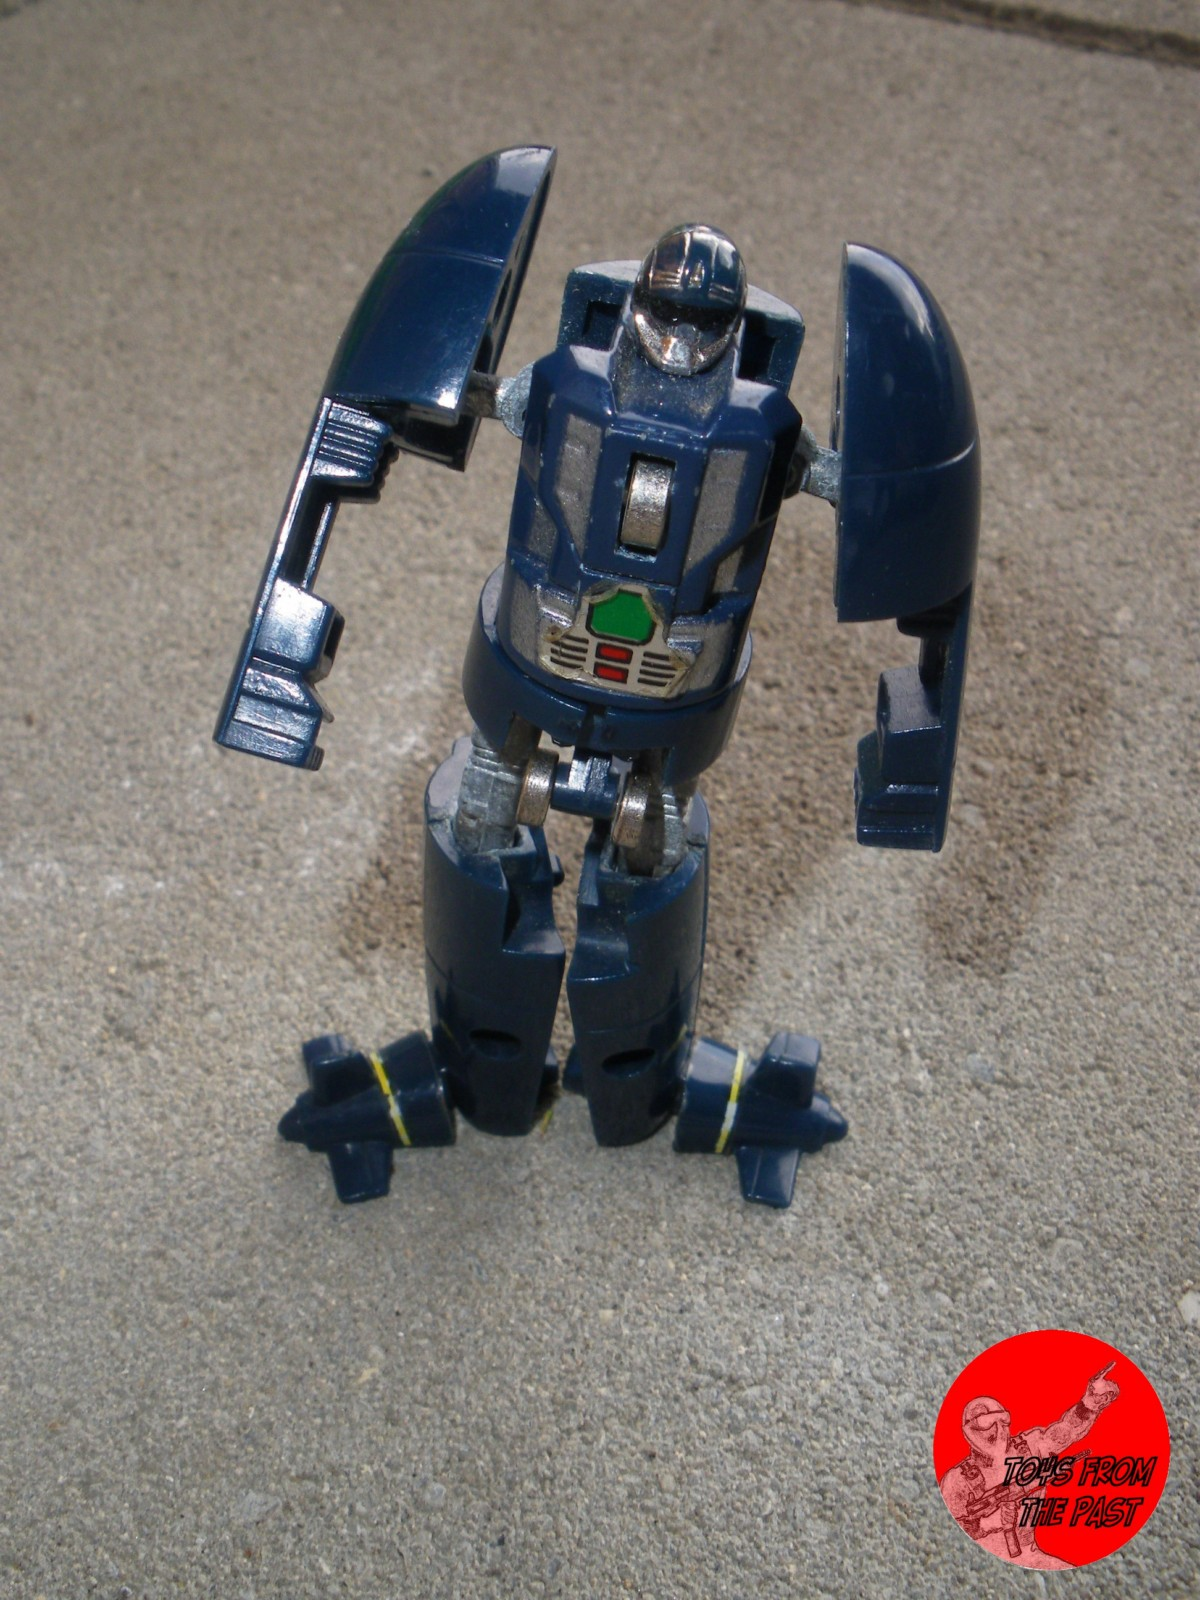 Bad Boy Toys : Toys from the past gobots dive night ranger